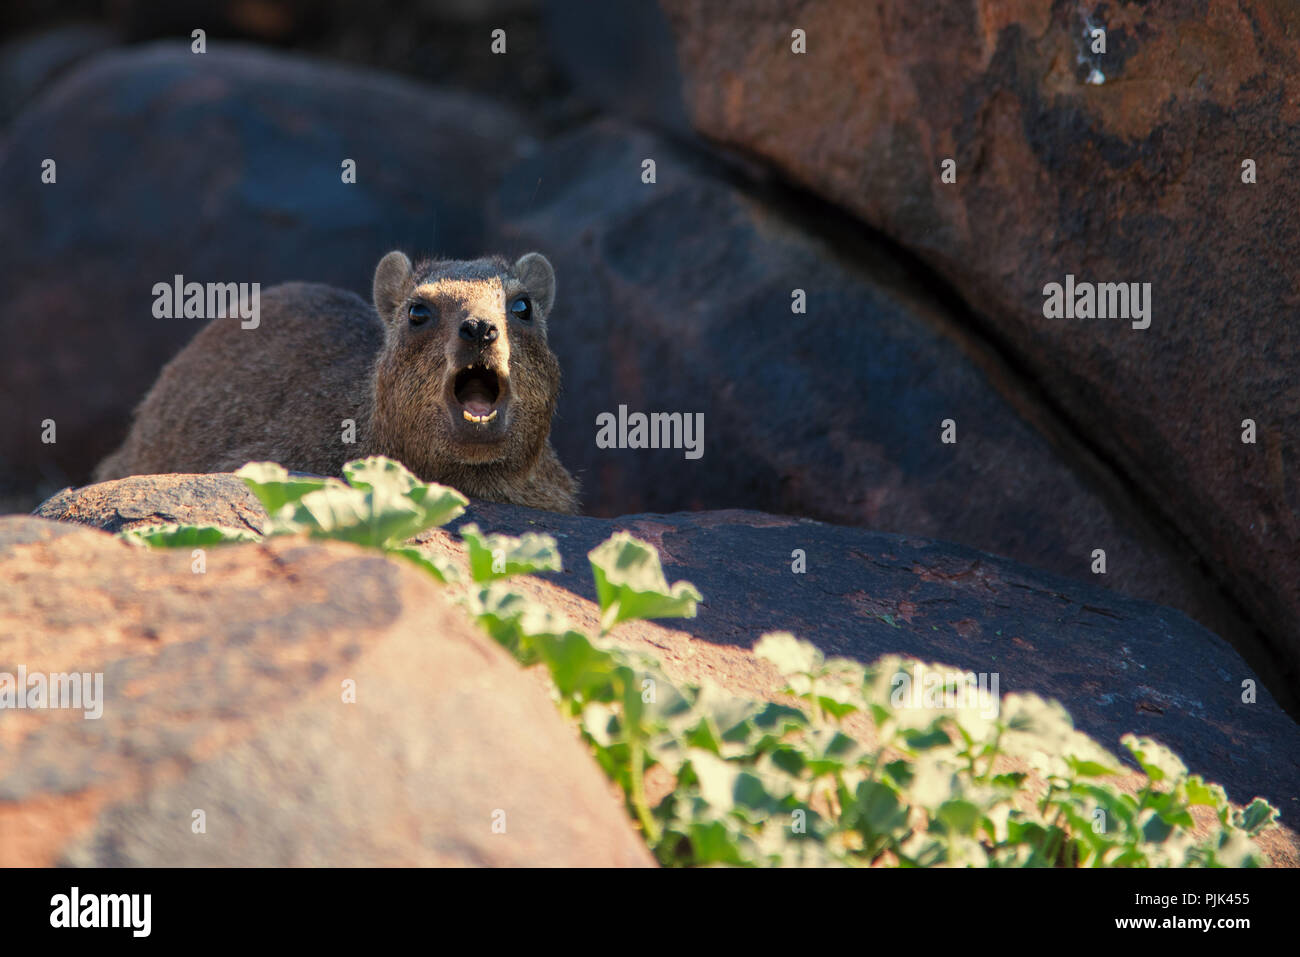 Rock hyrax, loud barking in Namibia, quiver tree forest. - Stock Image